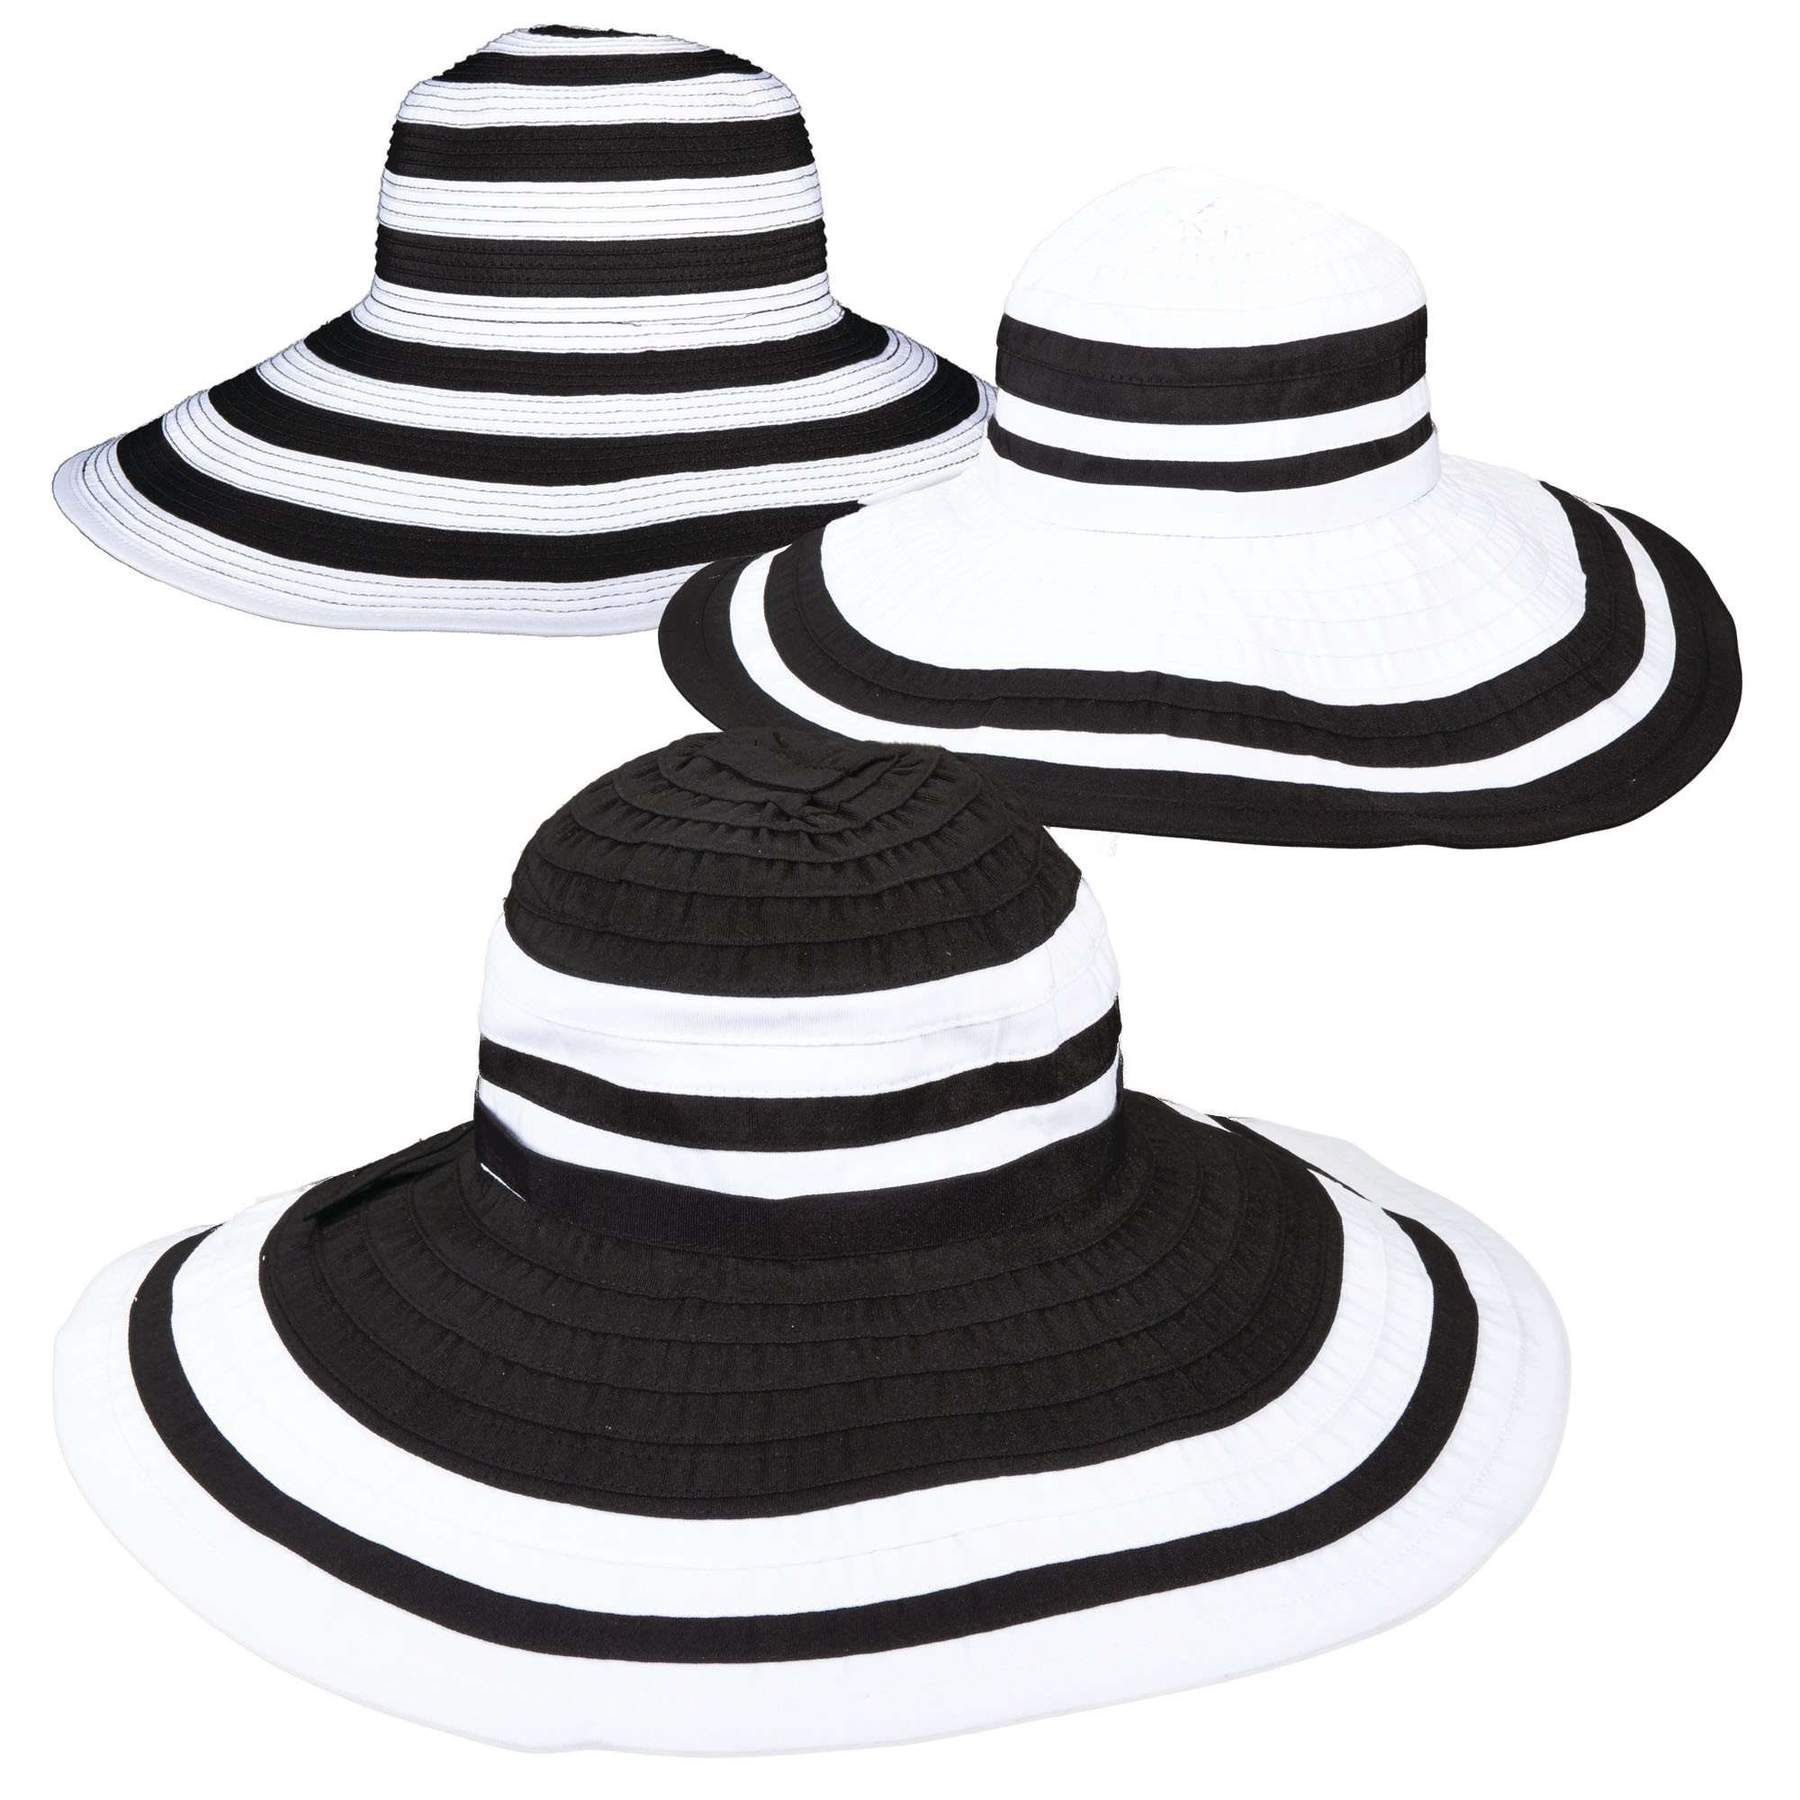 b827c7d6 Scala Large Brim Black and White Hat in 2019   2020 Accessories ...